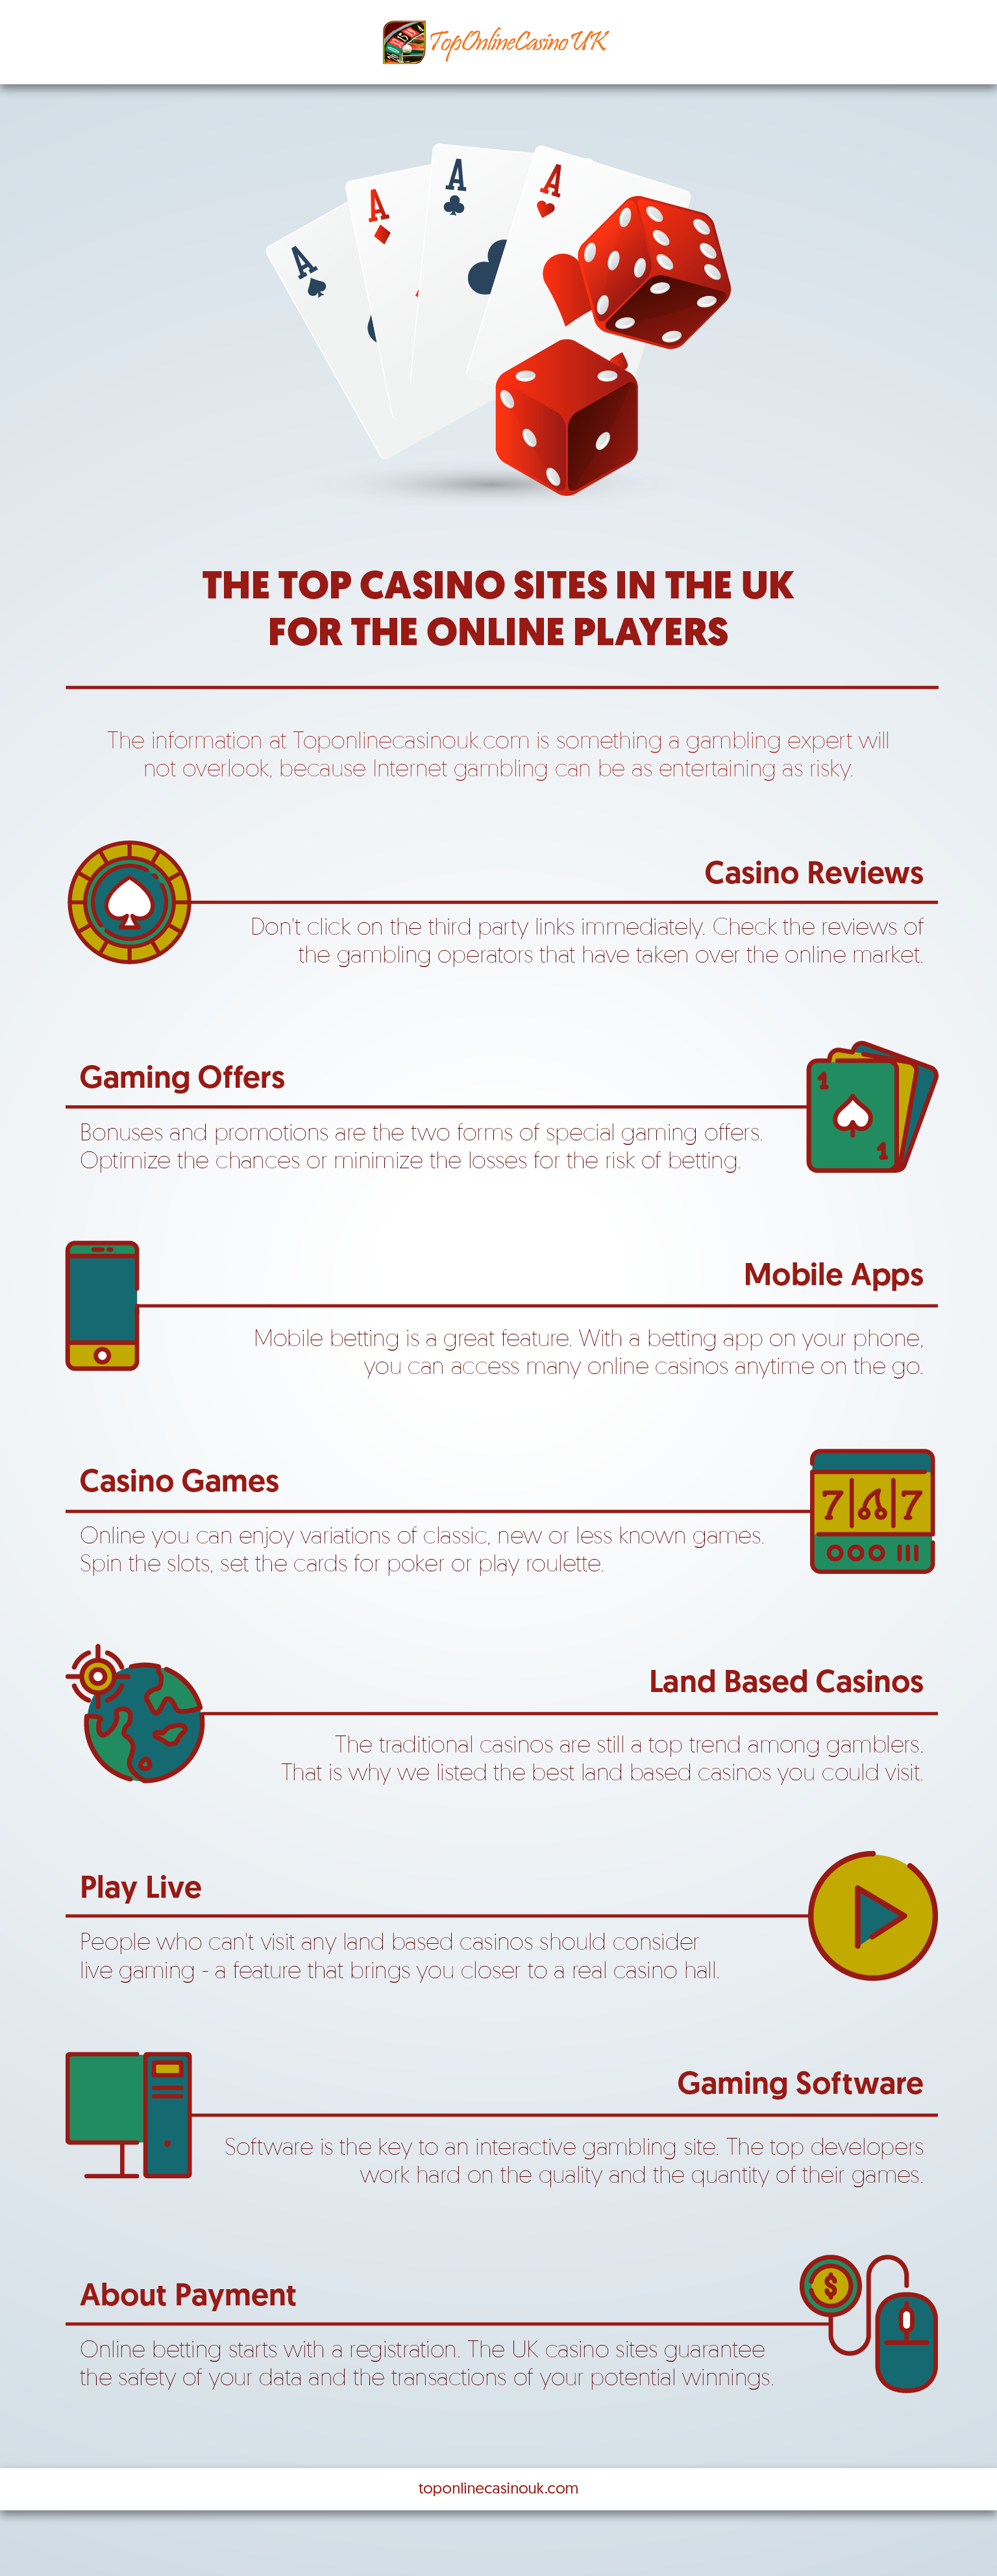 top online casino uk infographic